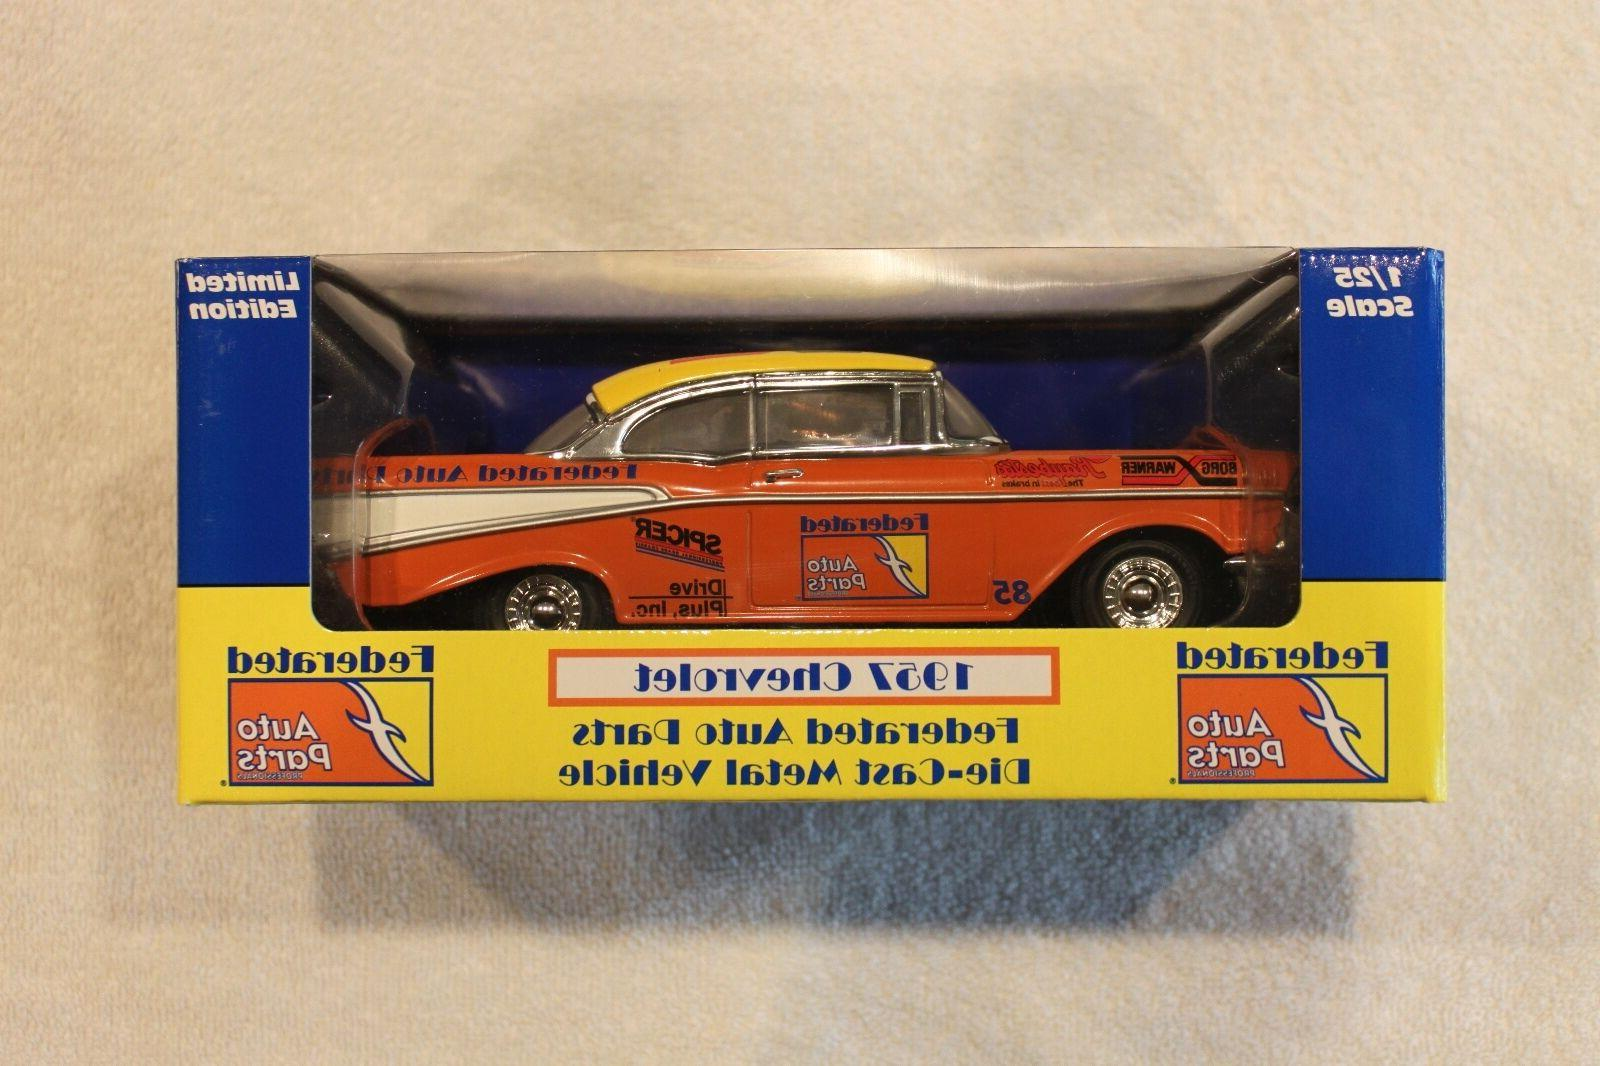 federated auto parts 1957 chevrolet collectable